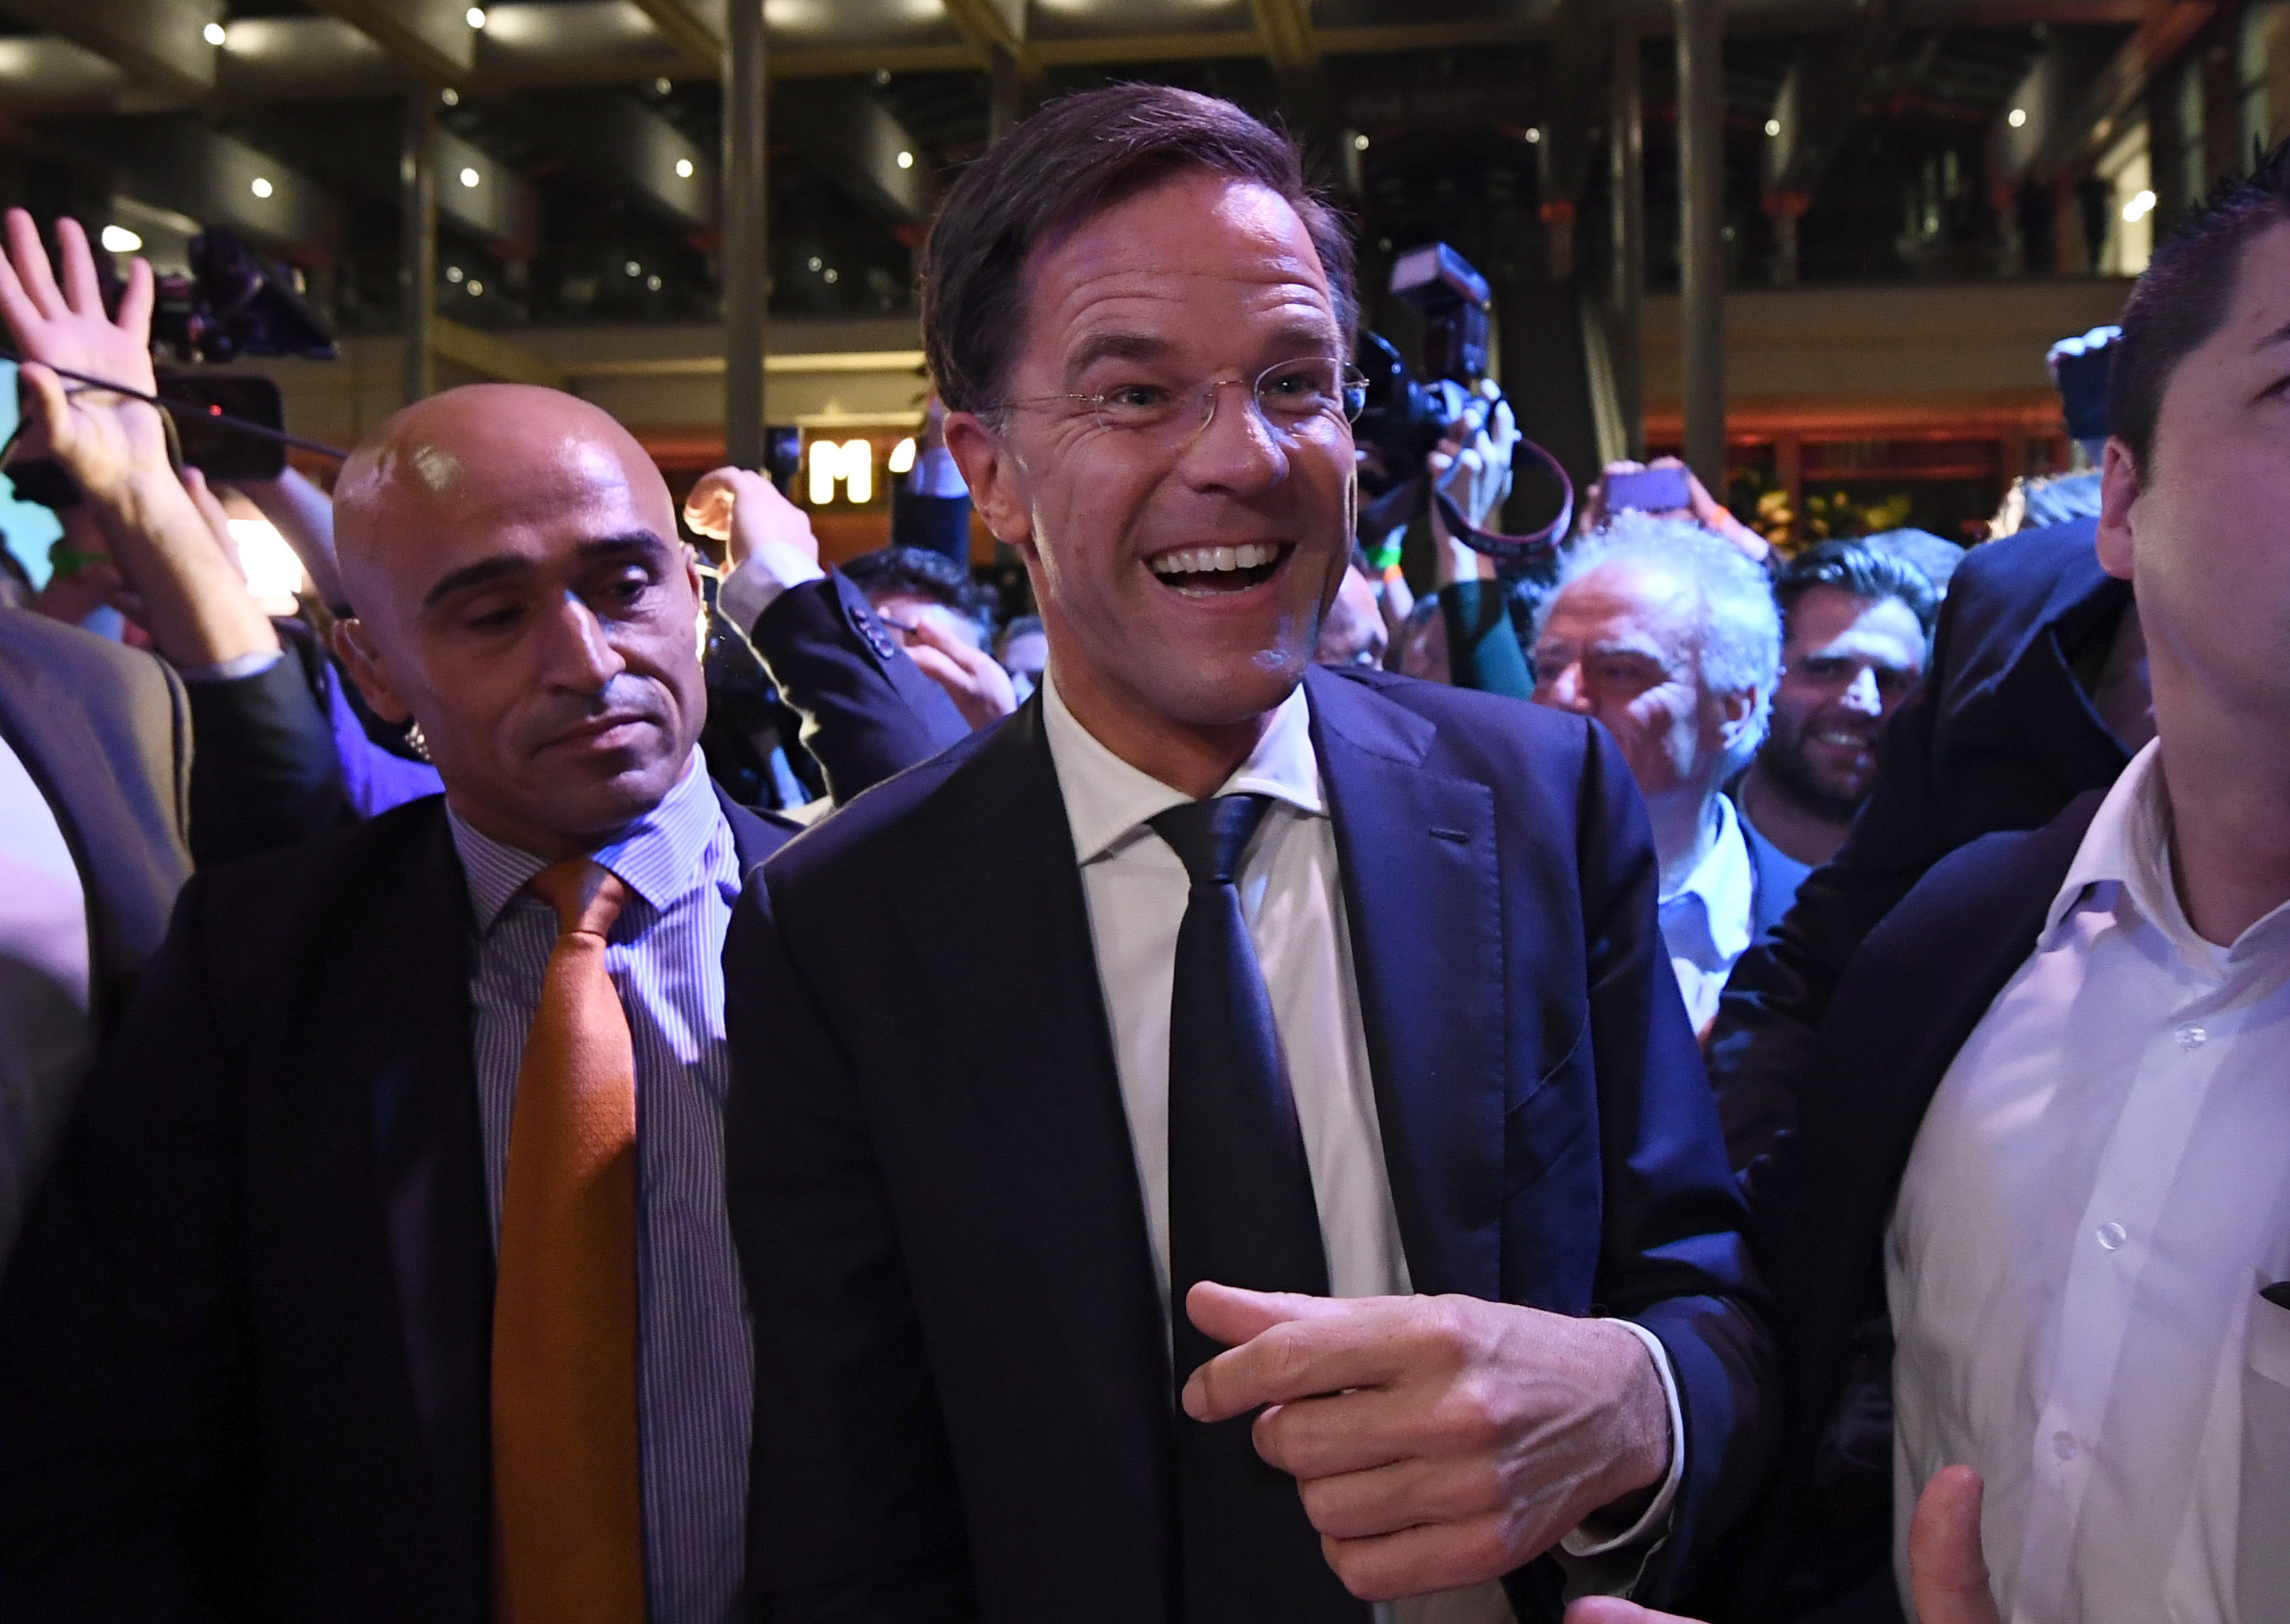 People's Party for Freedom and Democracy Declared Winners of Dutch Election